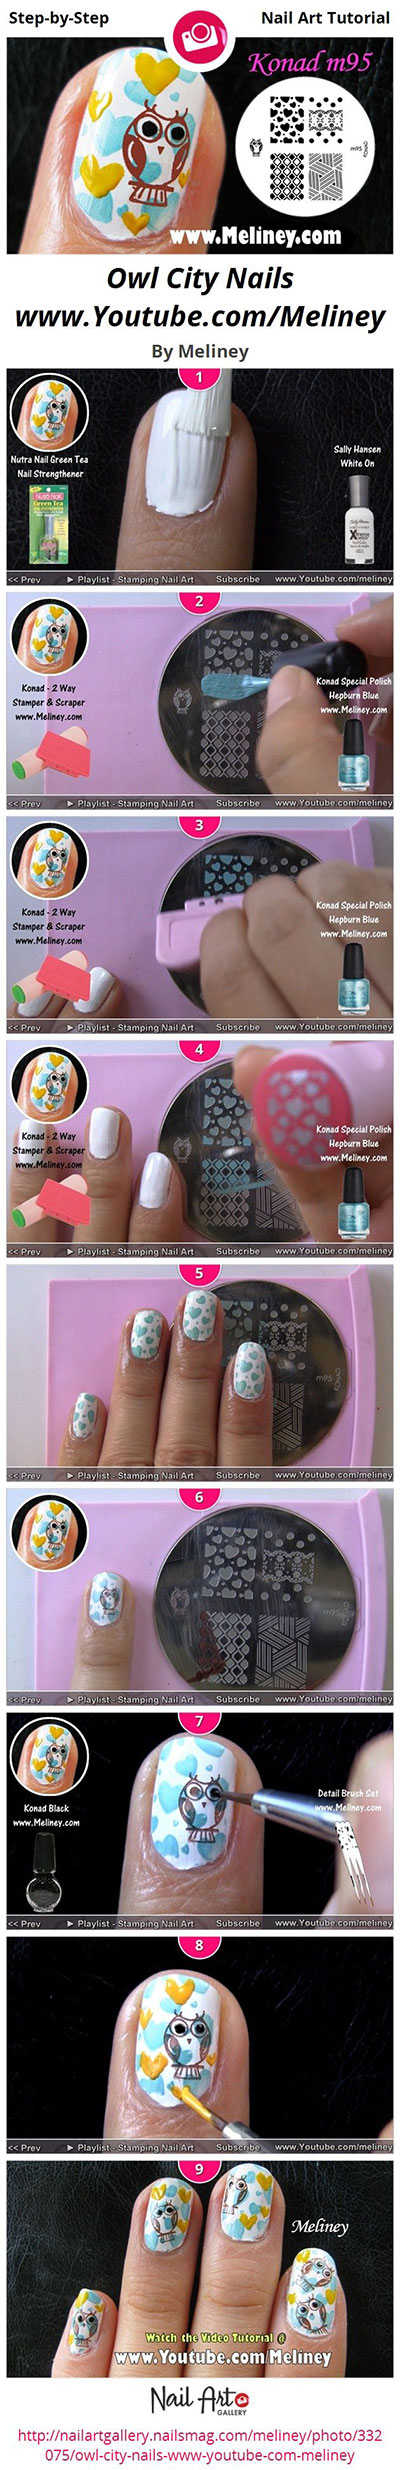 10-Easy-Step-By-Step-Owl-Nail-Art-Tutorials-For-Beginners-2014-11